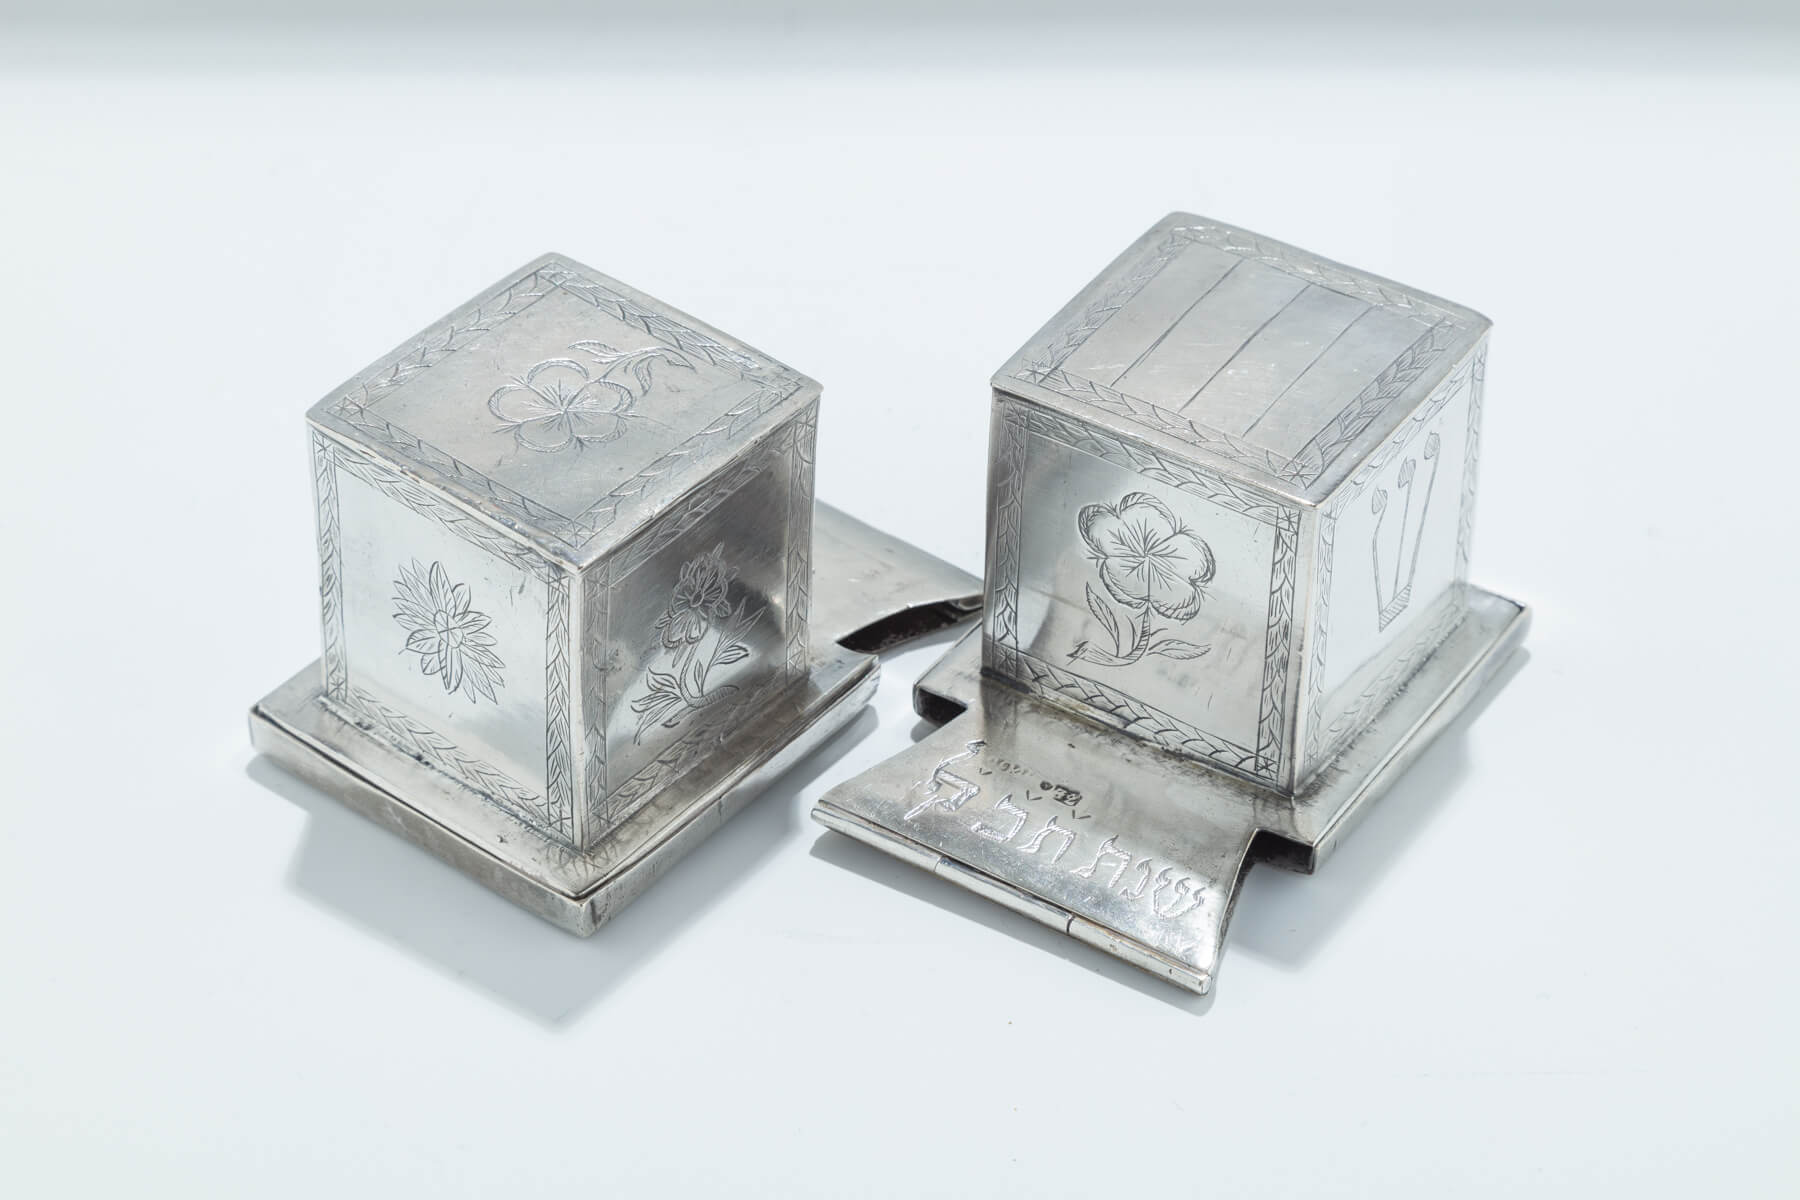 129. A Pair of Silver Tefillin Cases